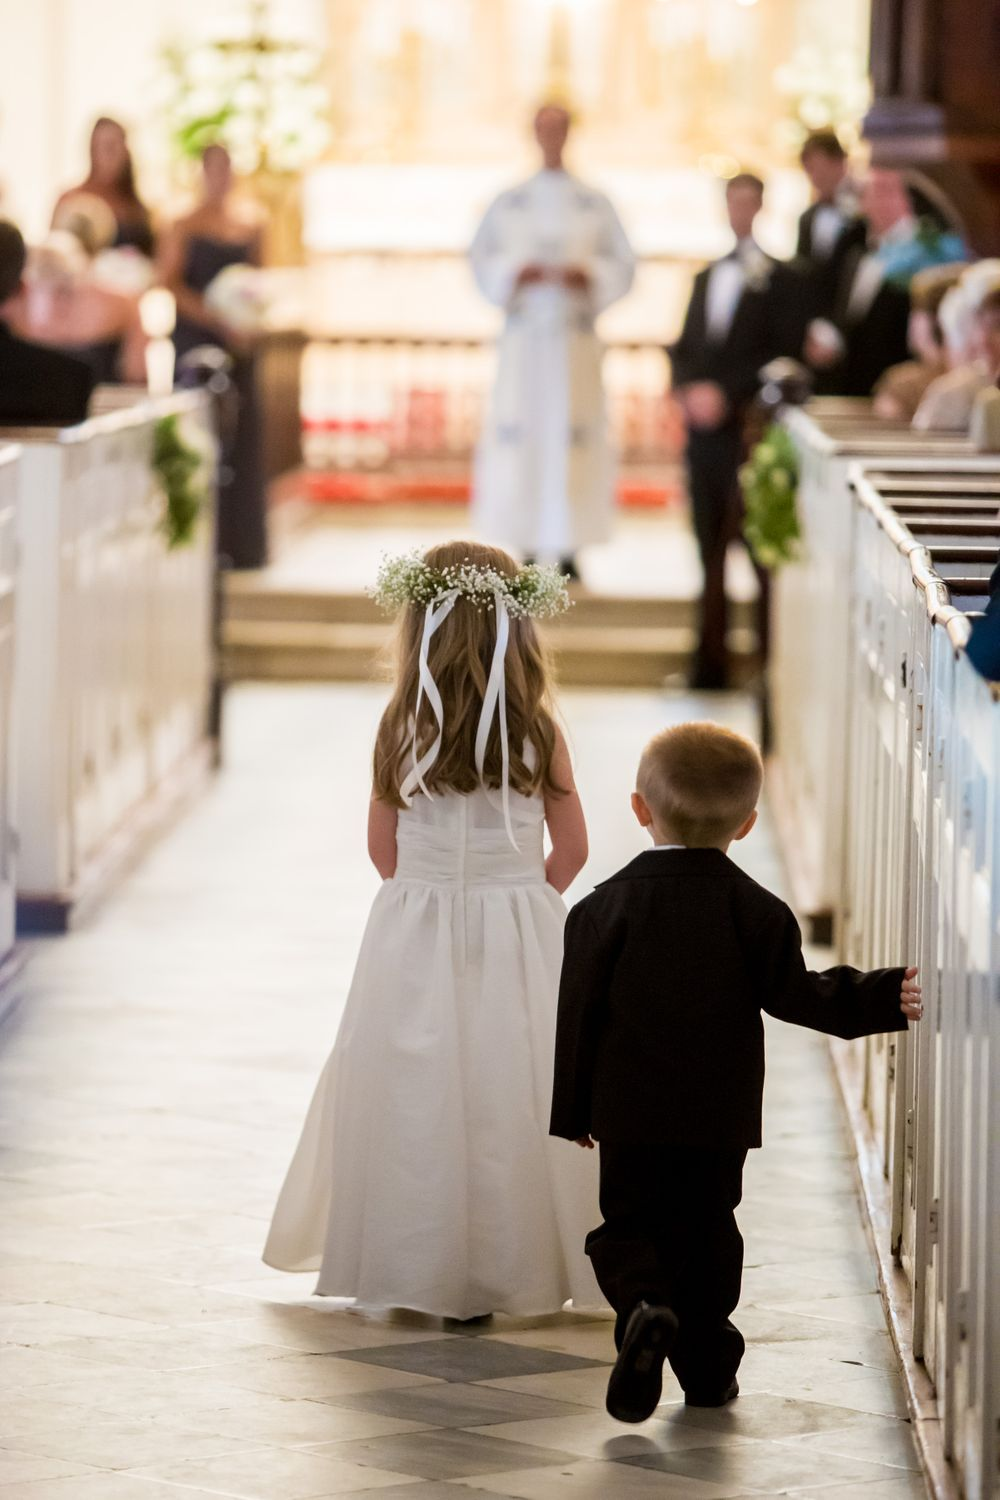 Flower girl and ring bearer walk down the aisle during a wedding at St. Philips Church in Charleston, SC